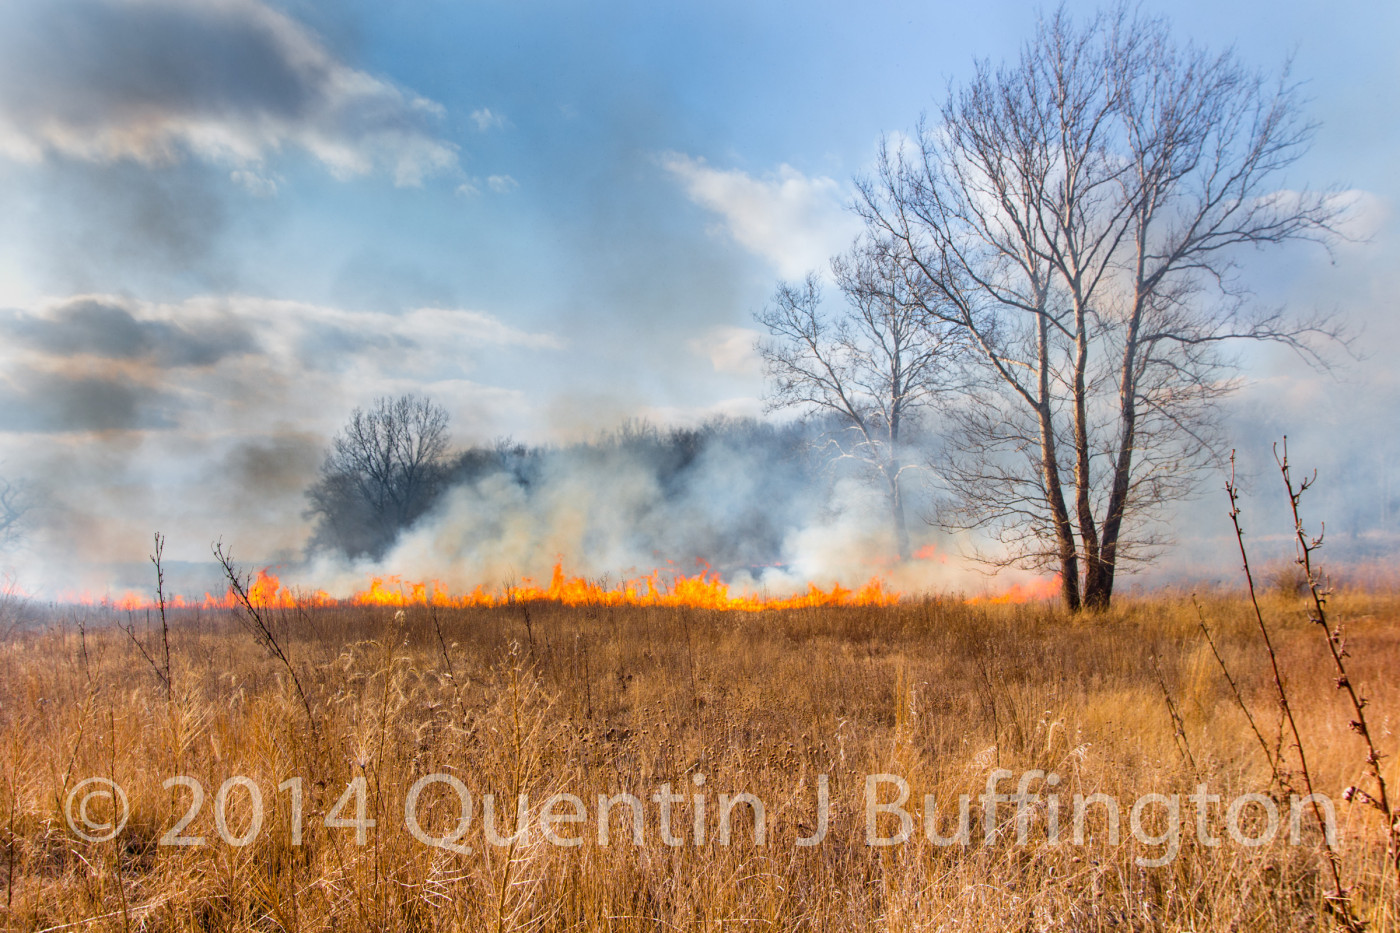 A prescribed and necessary part of a healthy Prairie, the burning of grass.